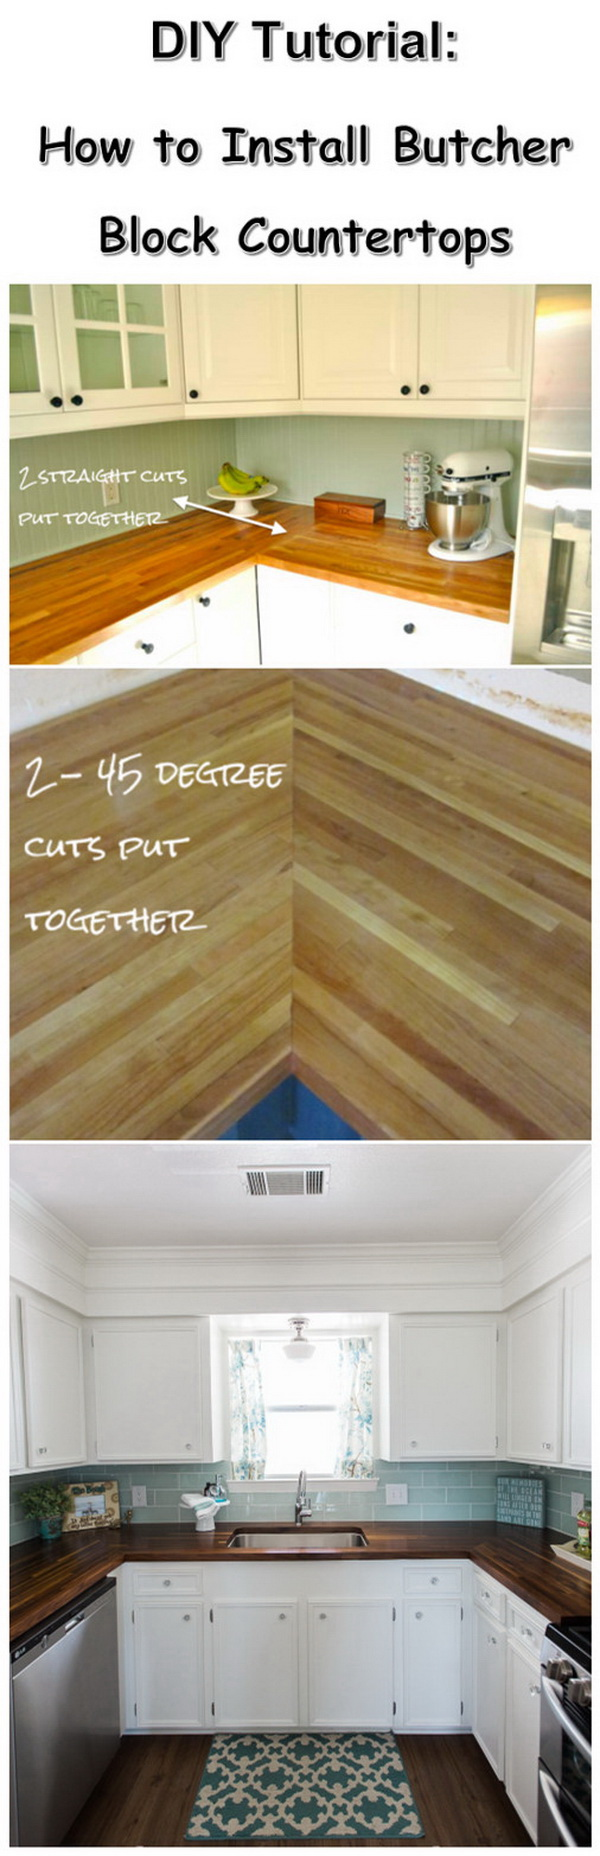 DIY Butcher Block Countertops.